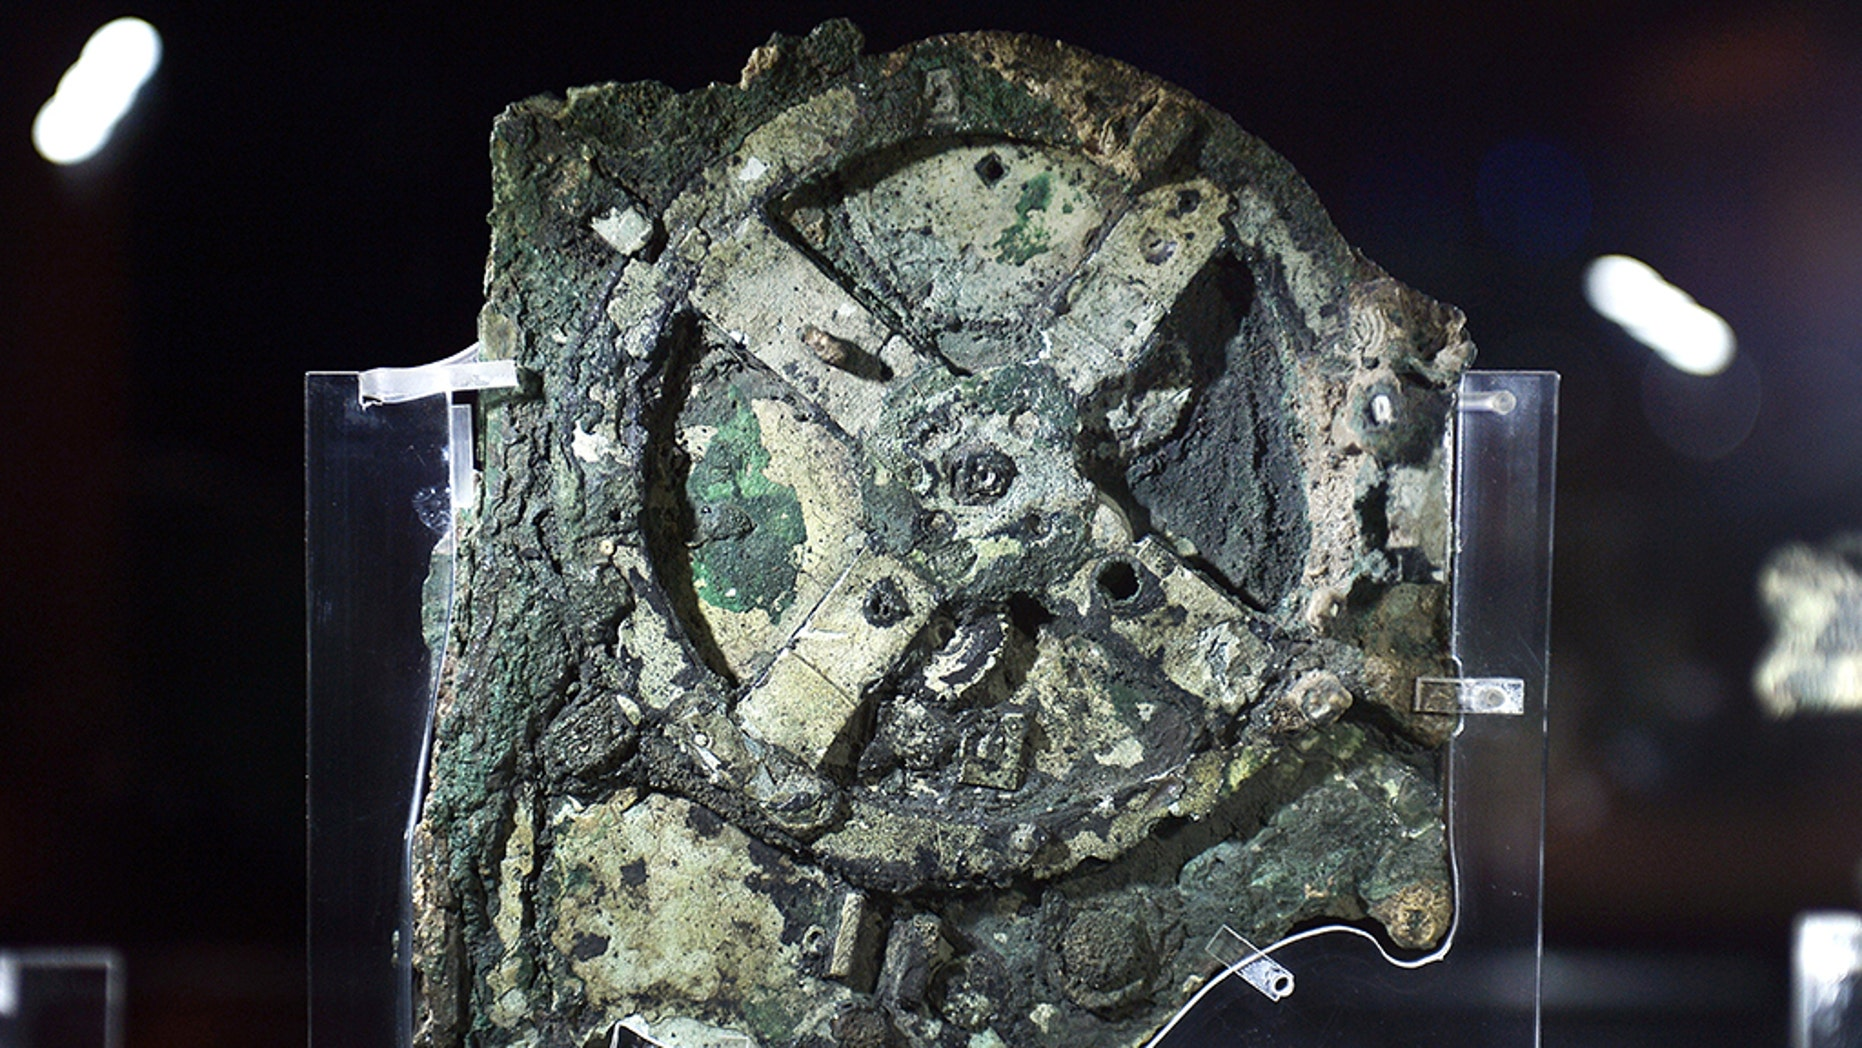 A picture taken at the Archaeological Museum in Athens on September 14, 2014, shows a piece of the so-called Antikythera Mechanism, a 2nd-century BC device known as the world's oldest computer, which was discovered by sponge divers in 1900 off a remote Greek island in the Aegean. The mechanism is a complex mechanical computer which tracked astronomical phenomena and the cycles of the Solar System. AFP PHOTO / LOUISA GOULIAMAKI (Credit: LOUISA GOULIAMAKI/AFP/Getty Images)